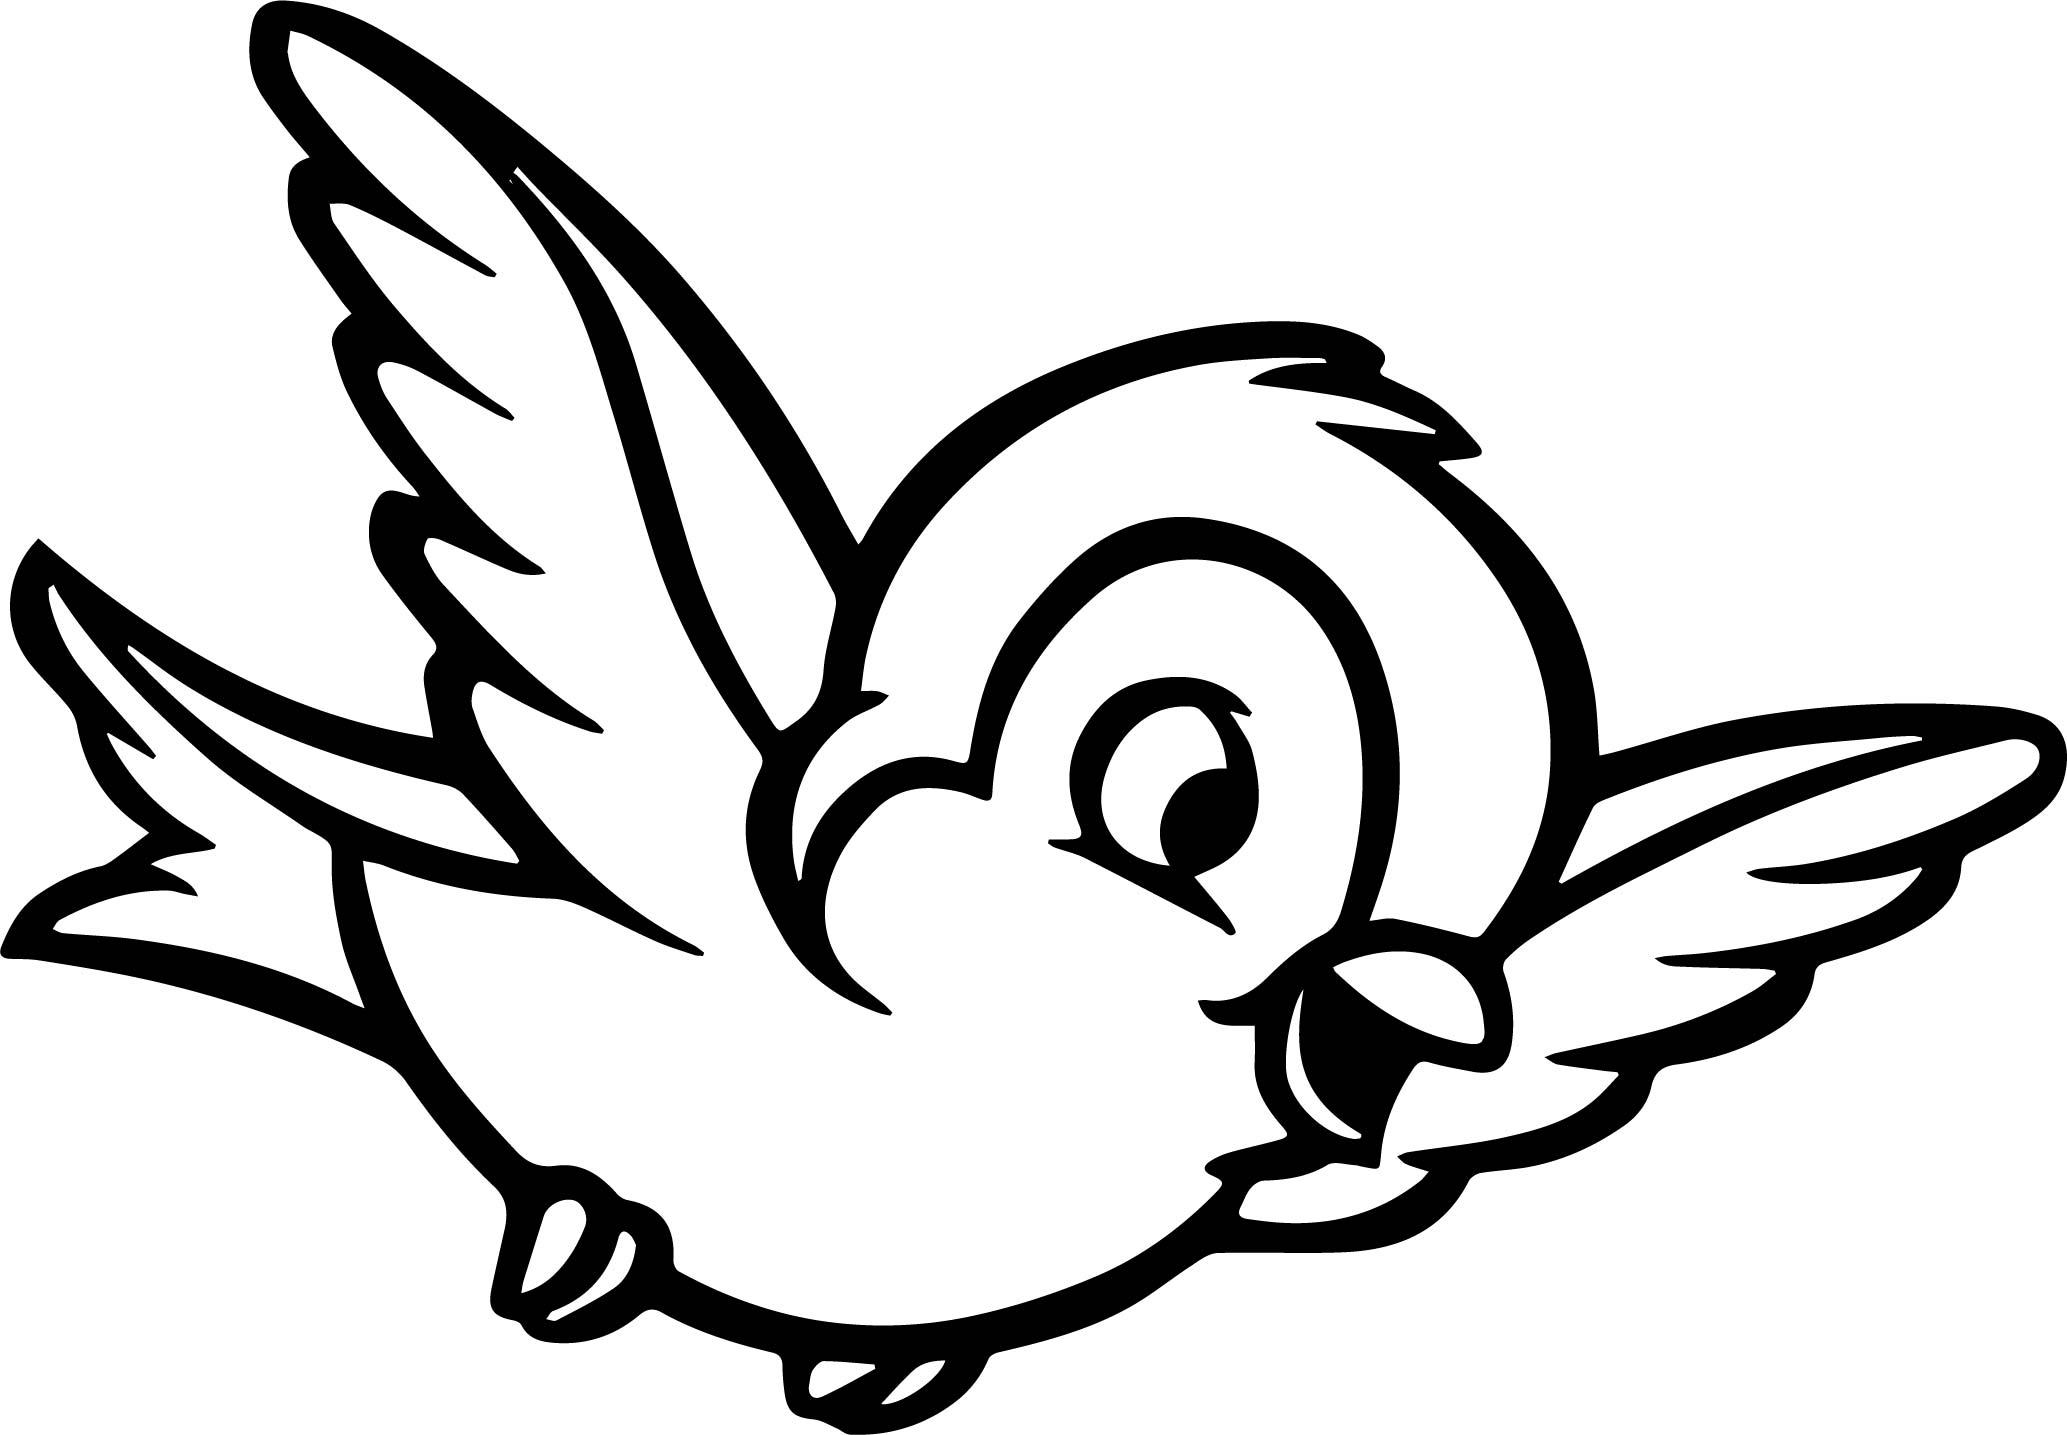 bird colouring pages for kids bird coloring pages for colouring pages bird kids